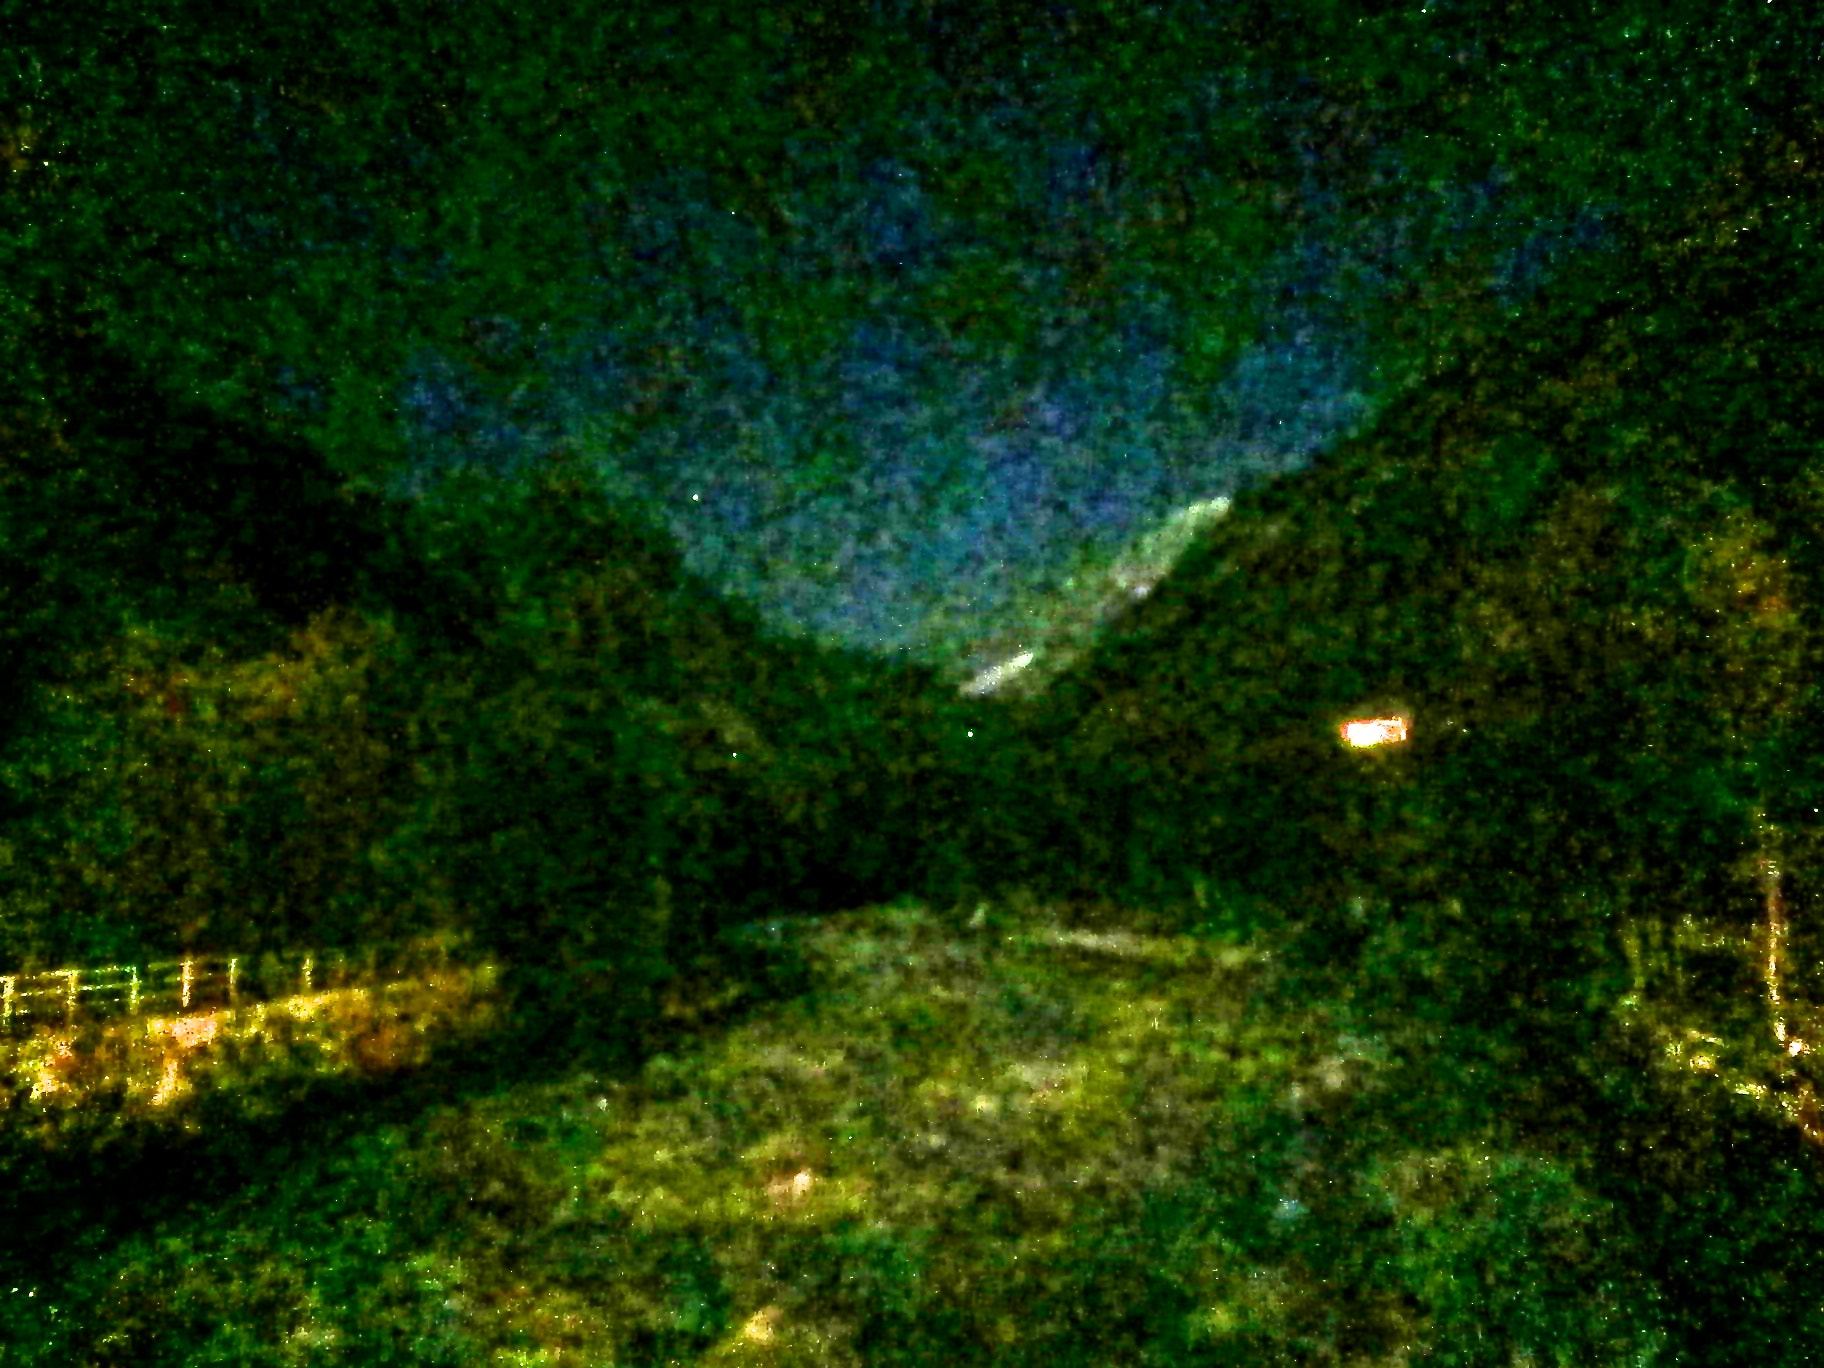 Photograph Morgex, Valley D' Aosta, The Alps, Italy 08/2012 by DG Jones on 500px